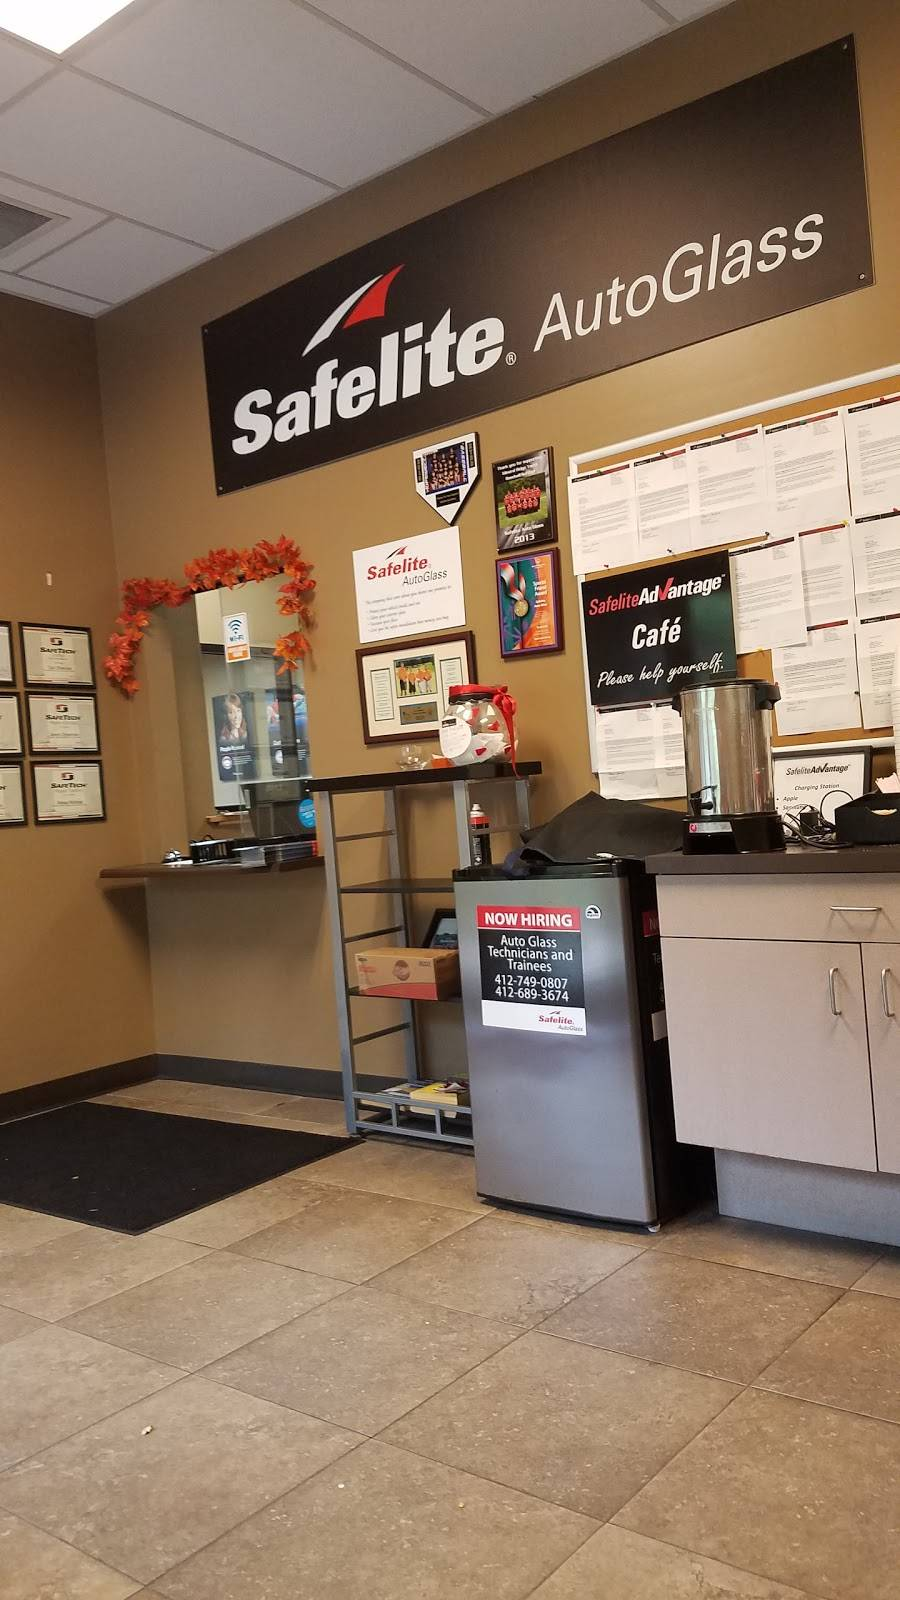 Safelite AutoGlass - car repair  | Photo 5 of 9 | Address: 205 Overlook Dr, Sewickley, PA 15143, USA | Phone: (412) 528-1836